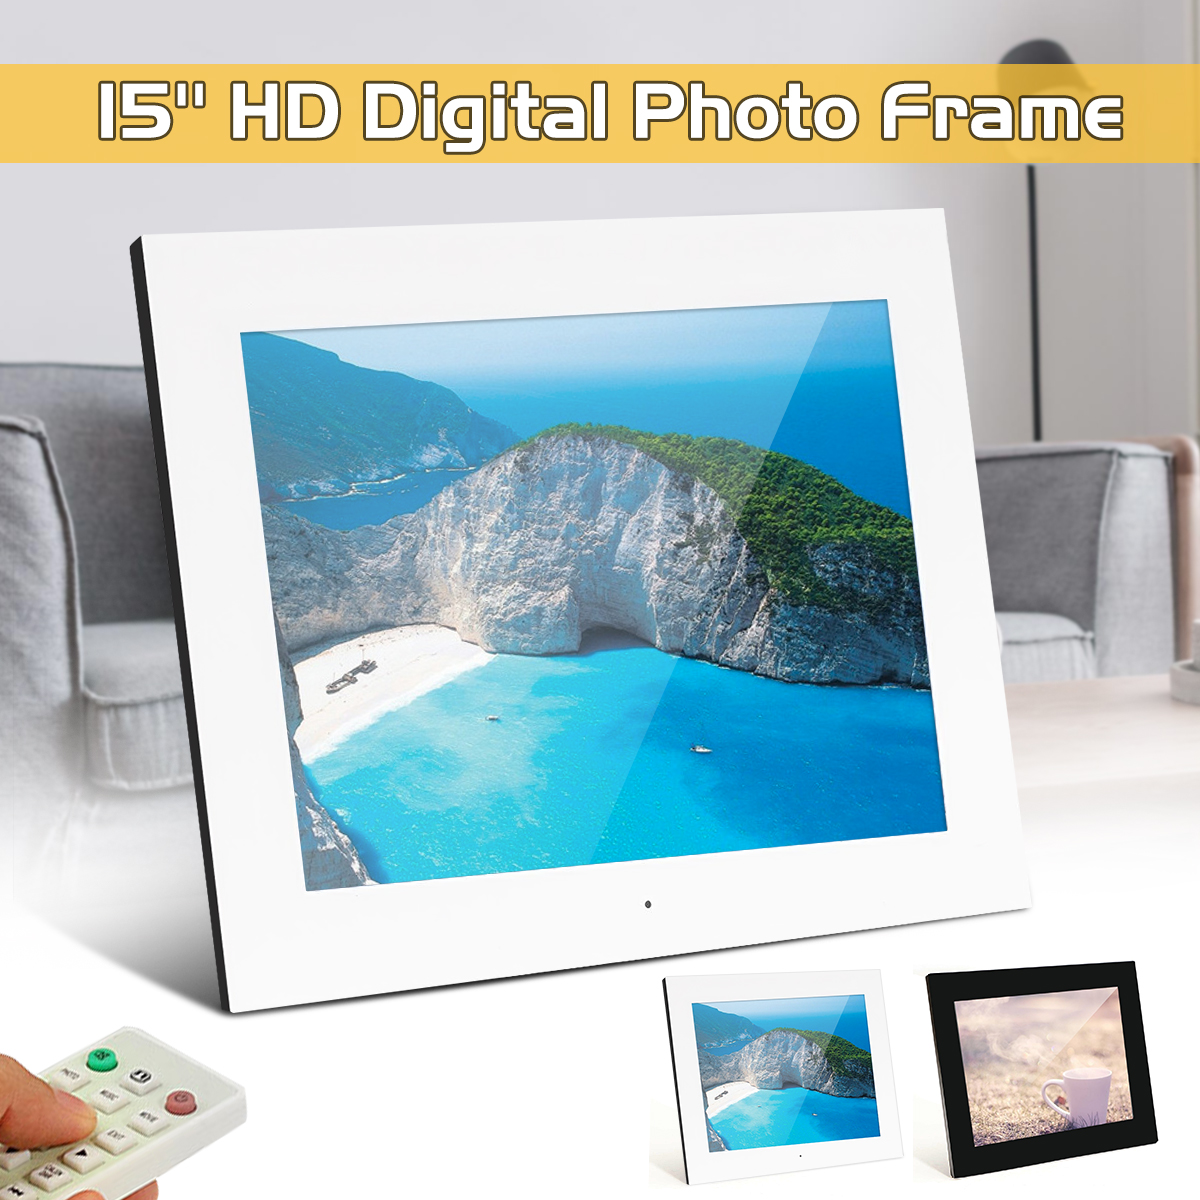 15 inch LCD Screen HD Digital Photo Frame Slideshow Picture Frame Video MP3 Player Music Speaker SD Card Reader Alarm Clock digital video player 7inch hd lcd digital photo frame with alarm clock slideshow mp4 player bk media player with screen tw